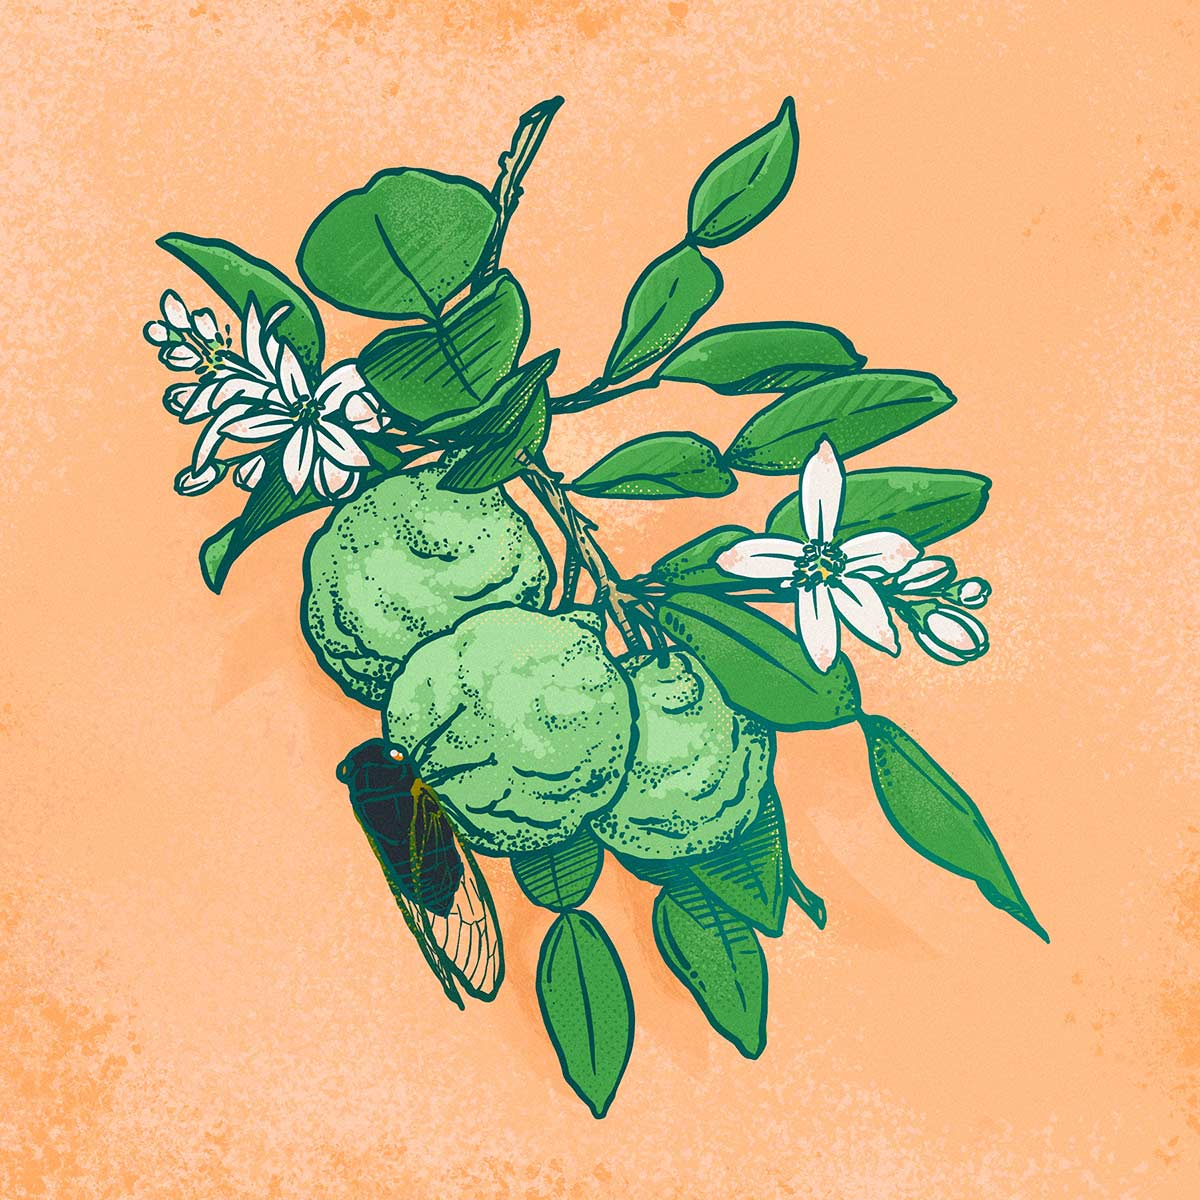 Illustration by Brittany Norris of kaffir lime and cicada